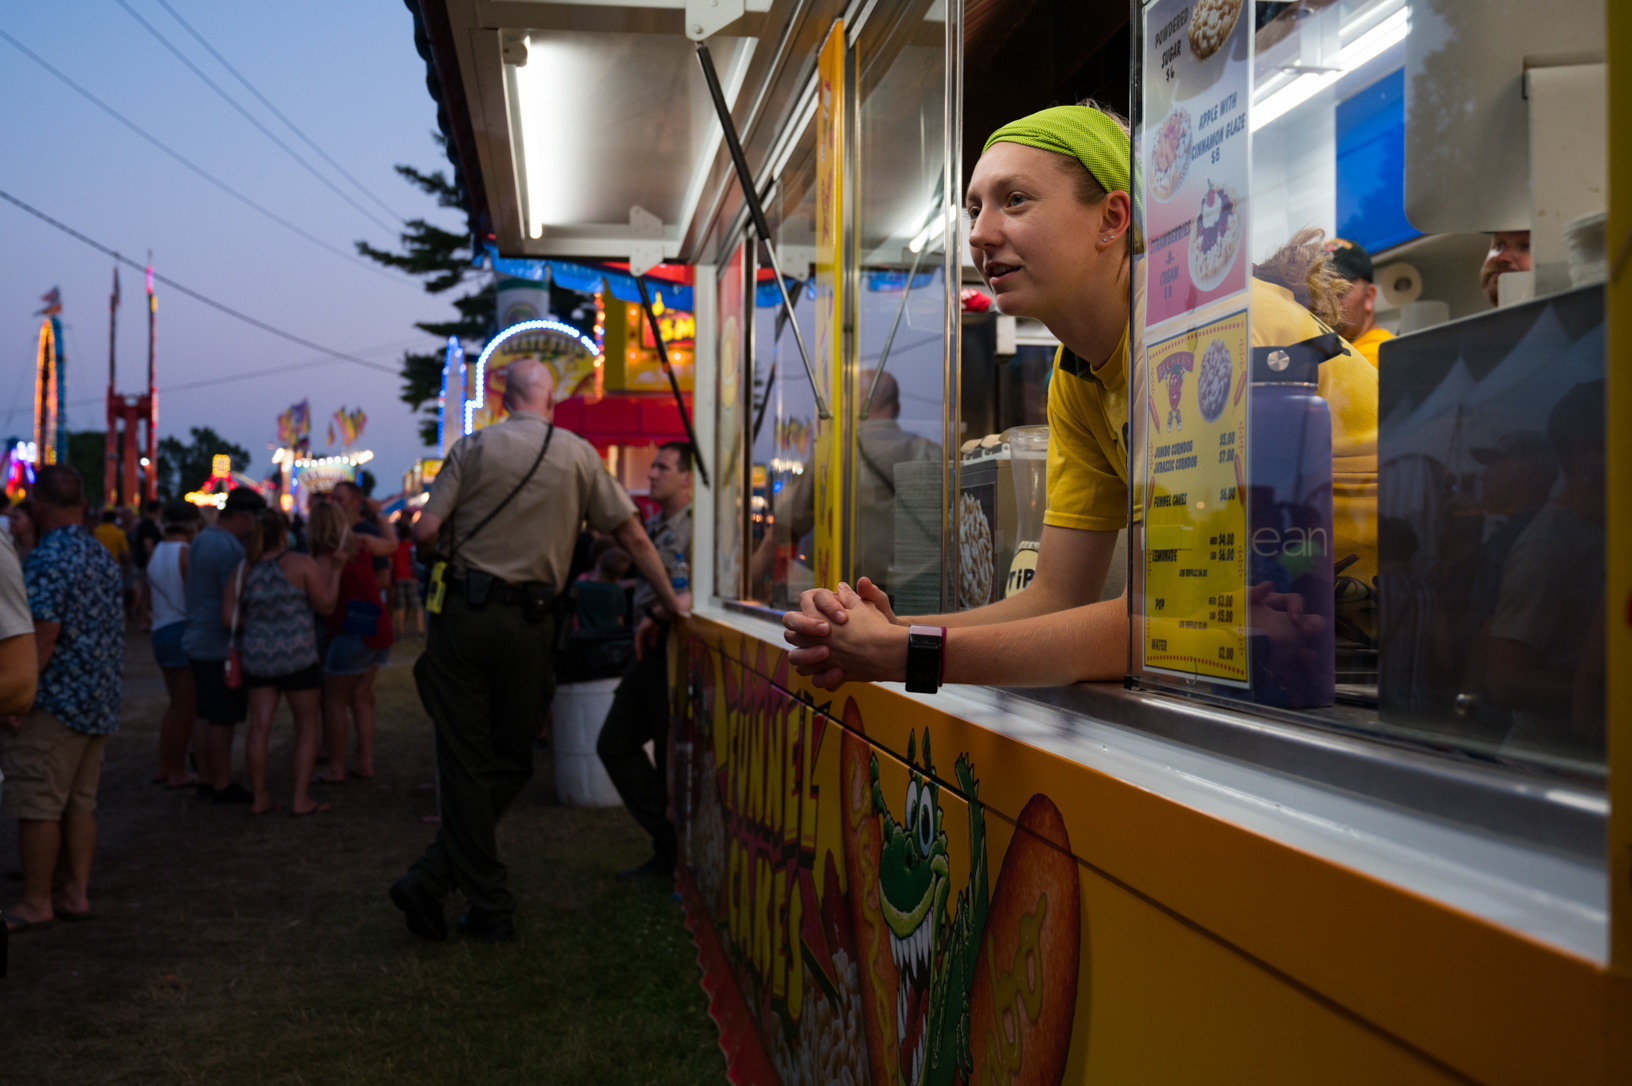 Kaelee Knoll sings along with a Hootie and the Blowfish song while waiting for customers at a funnel cake stand during the Jones County Fair. Photo credit: Joseph L. Murphy/Iowa Soybean Association